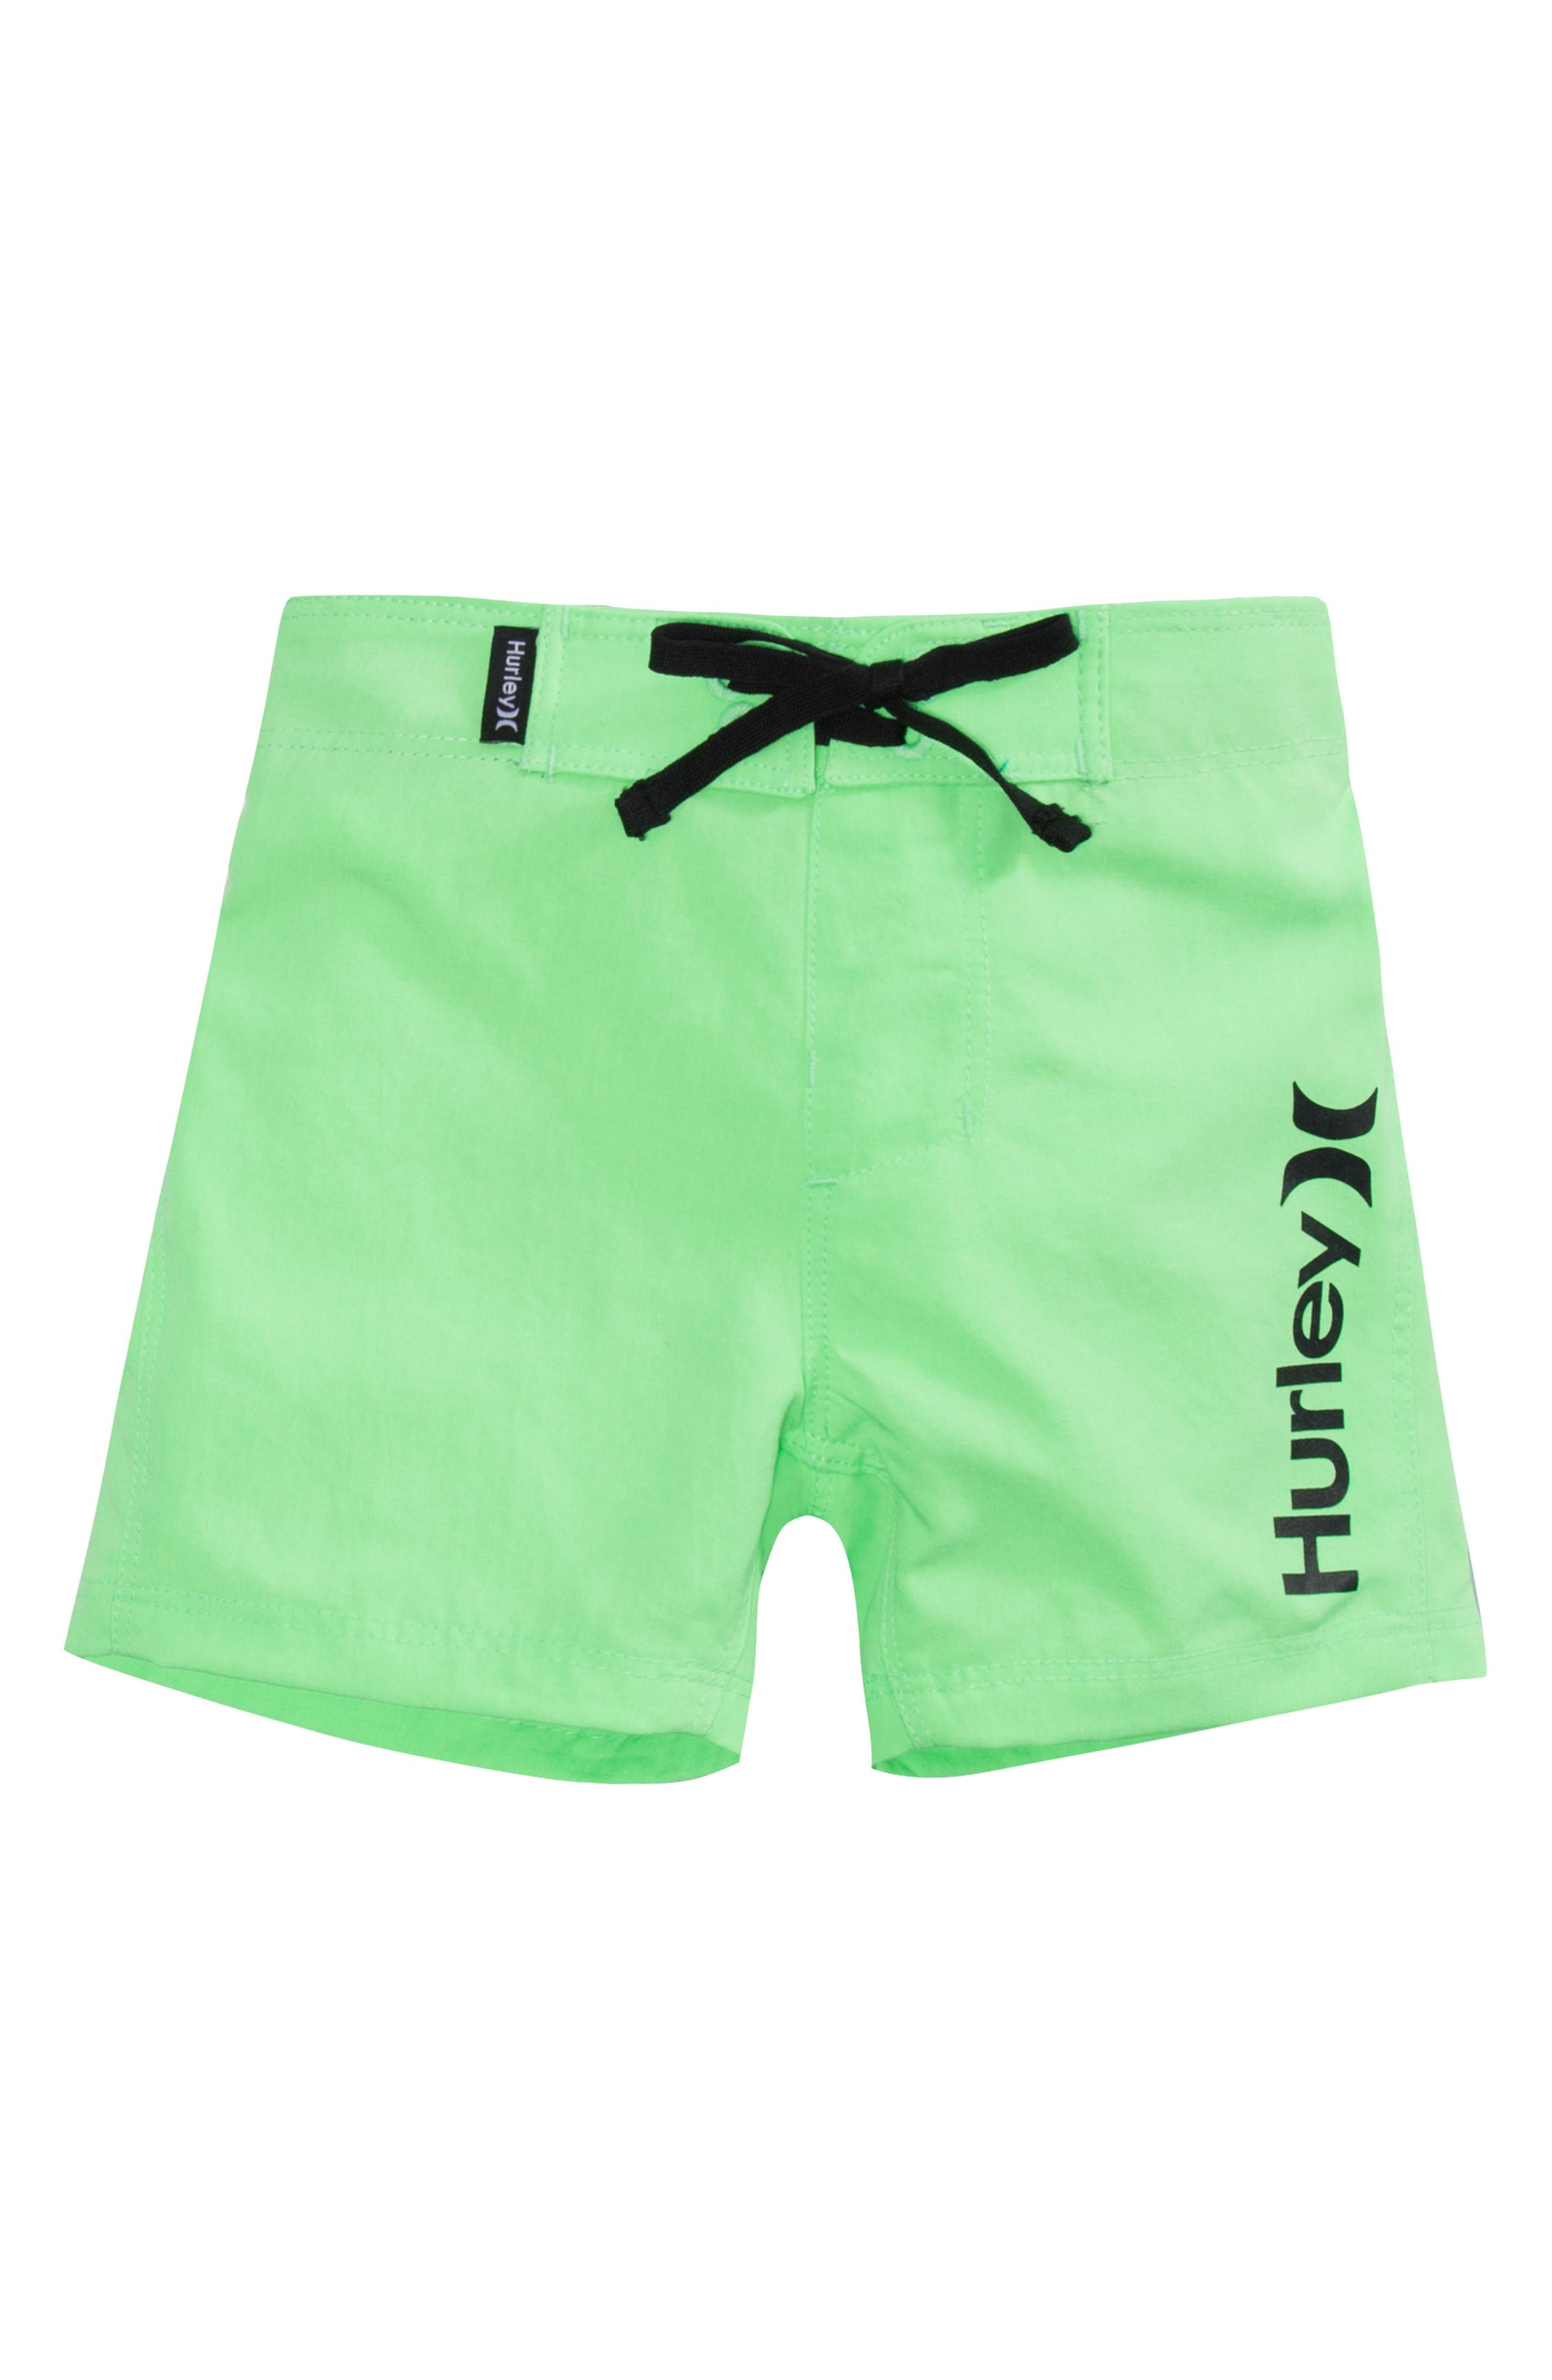 Heathered One & Only Board Shorts,                             Main thumbnail 1, color,                             300